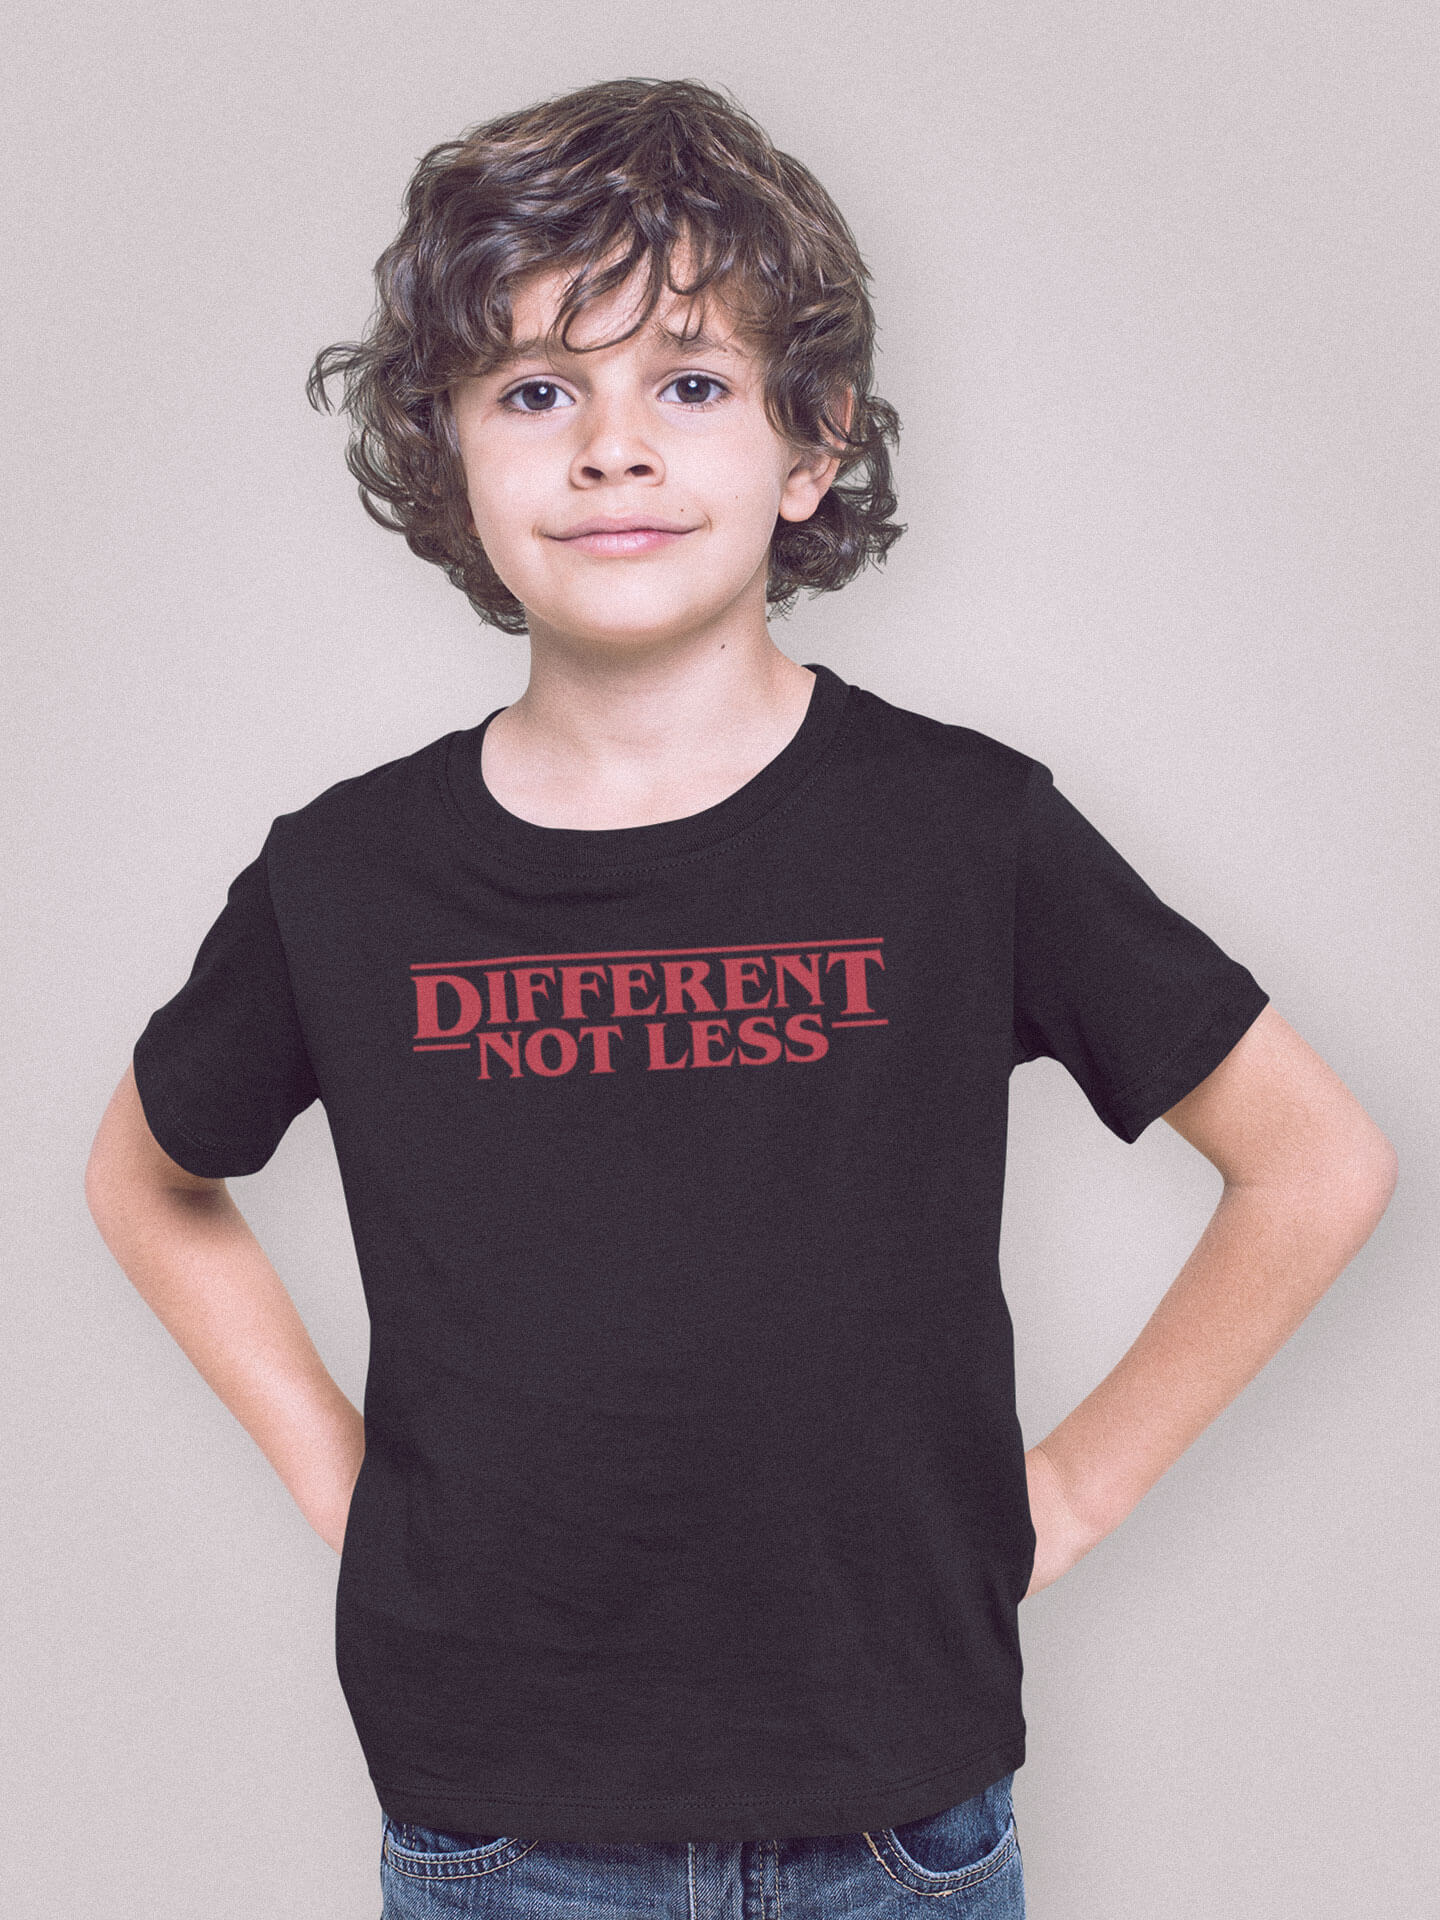 boy posing wearing different not less t-shirt in a studio